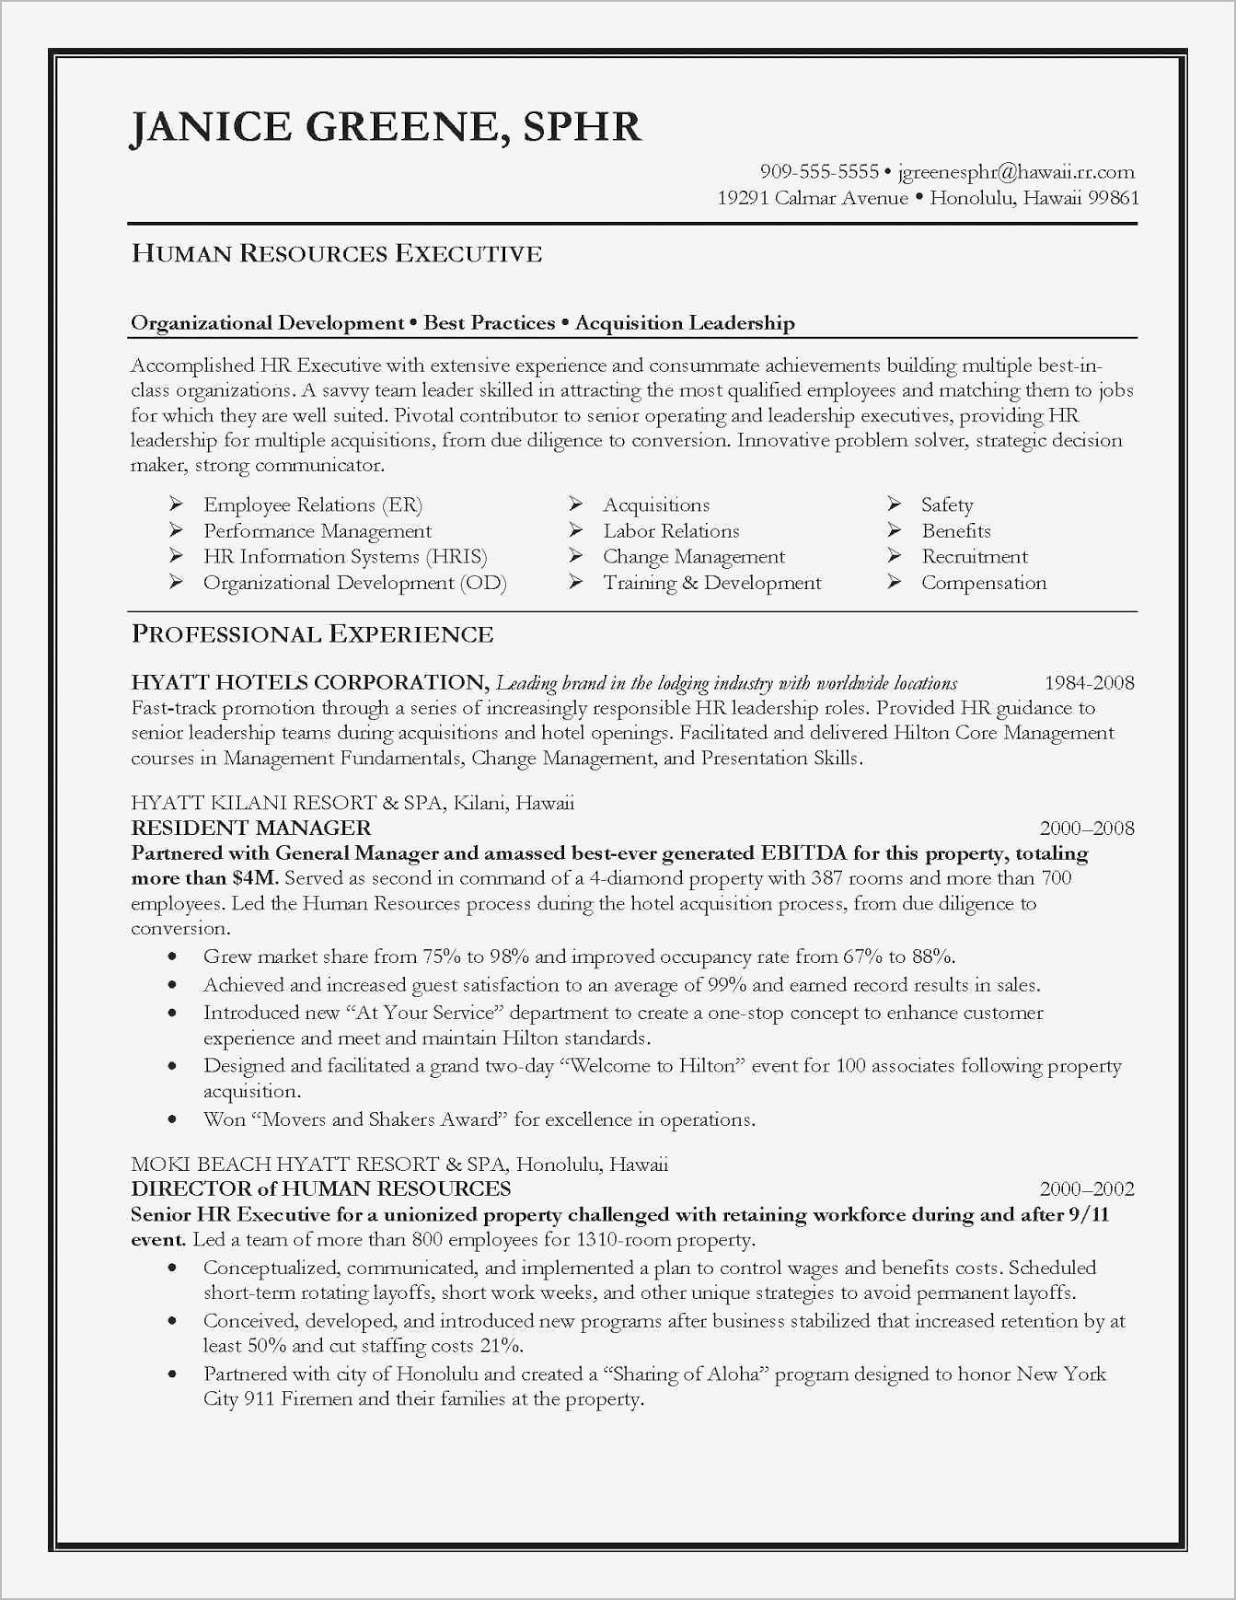 Benefits Manager Resume Summary 2019 Resume Cover Letter 2020 benefits manager resume benefits manager resume summary benefits manager resume cover letter benefits manager resume template benefits account manager resume employee benefits manager resume sample